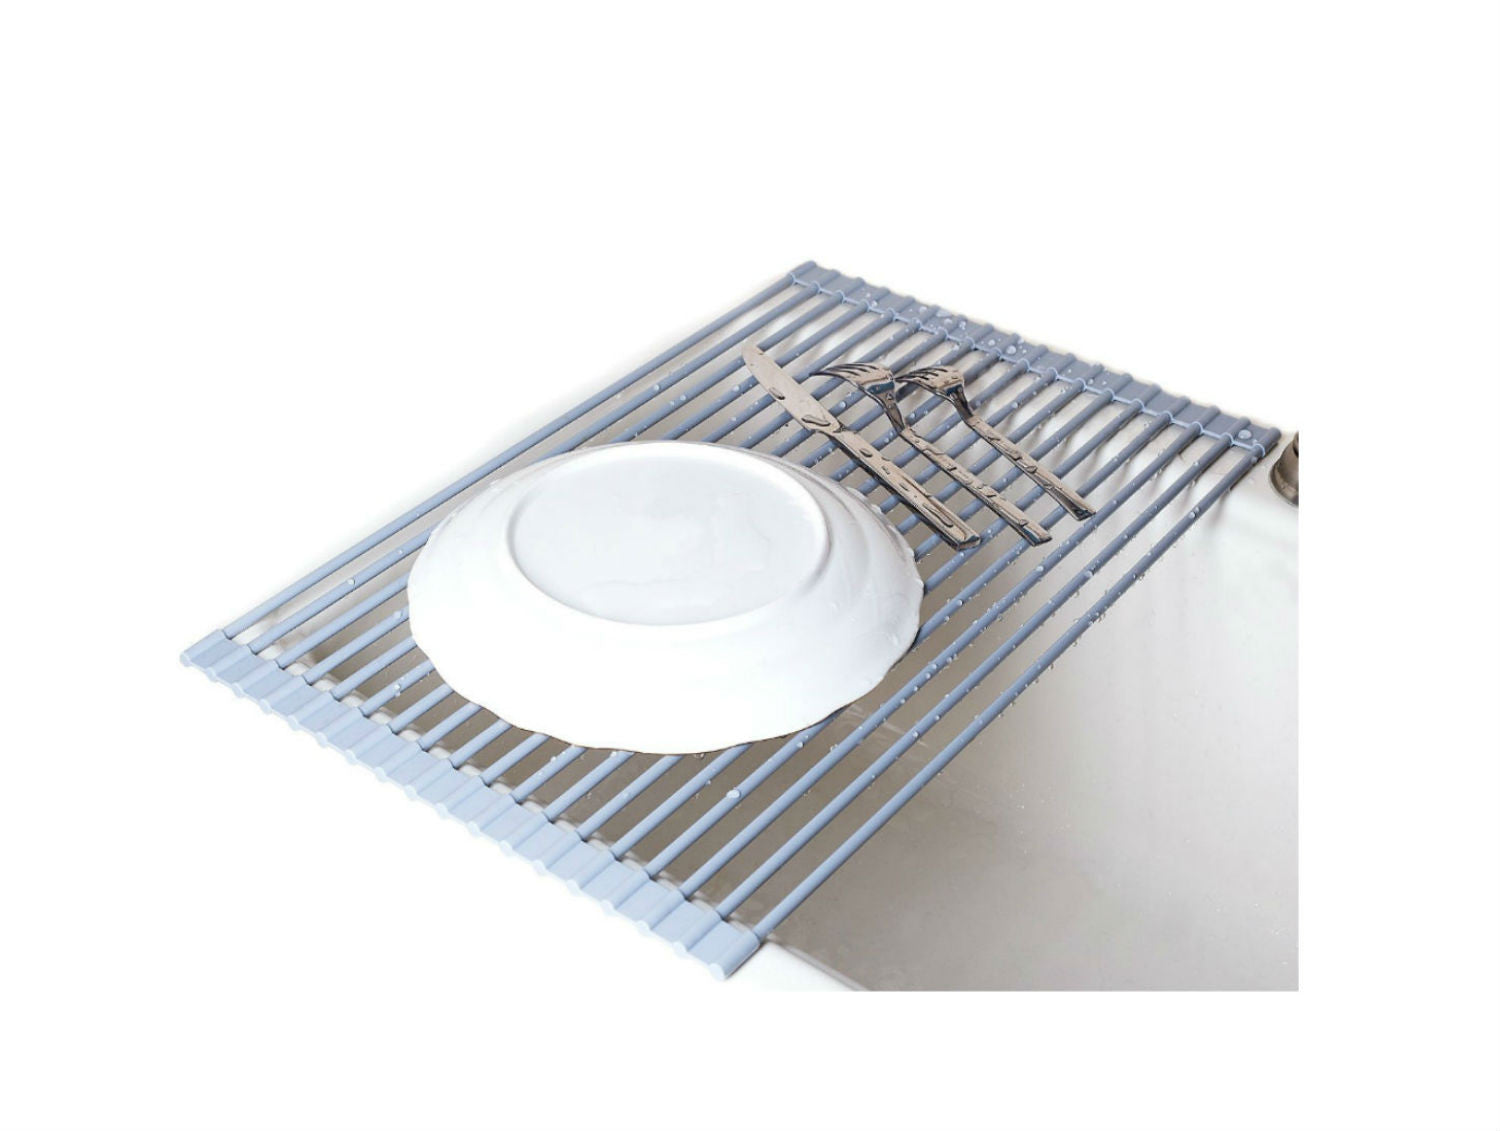 Over The Sink Roll Up Dish Drying Rack